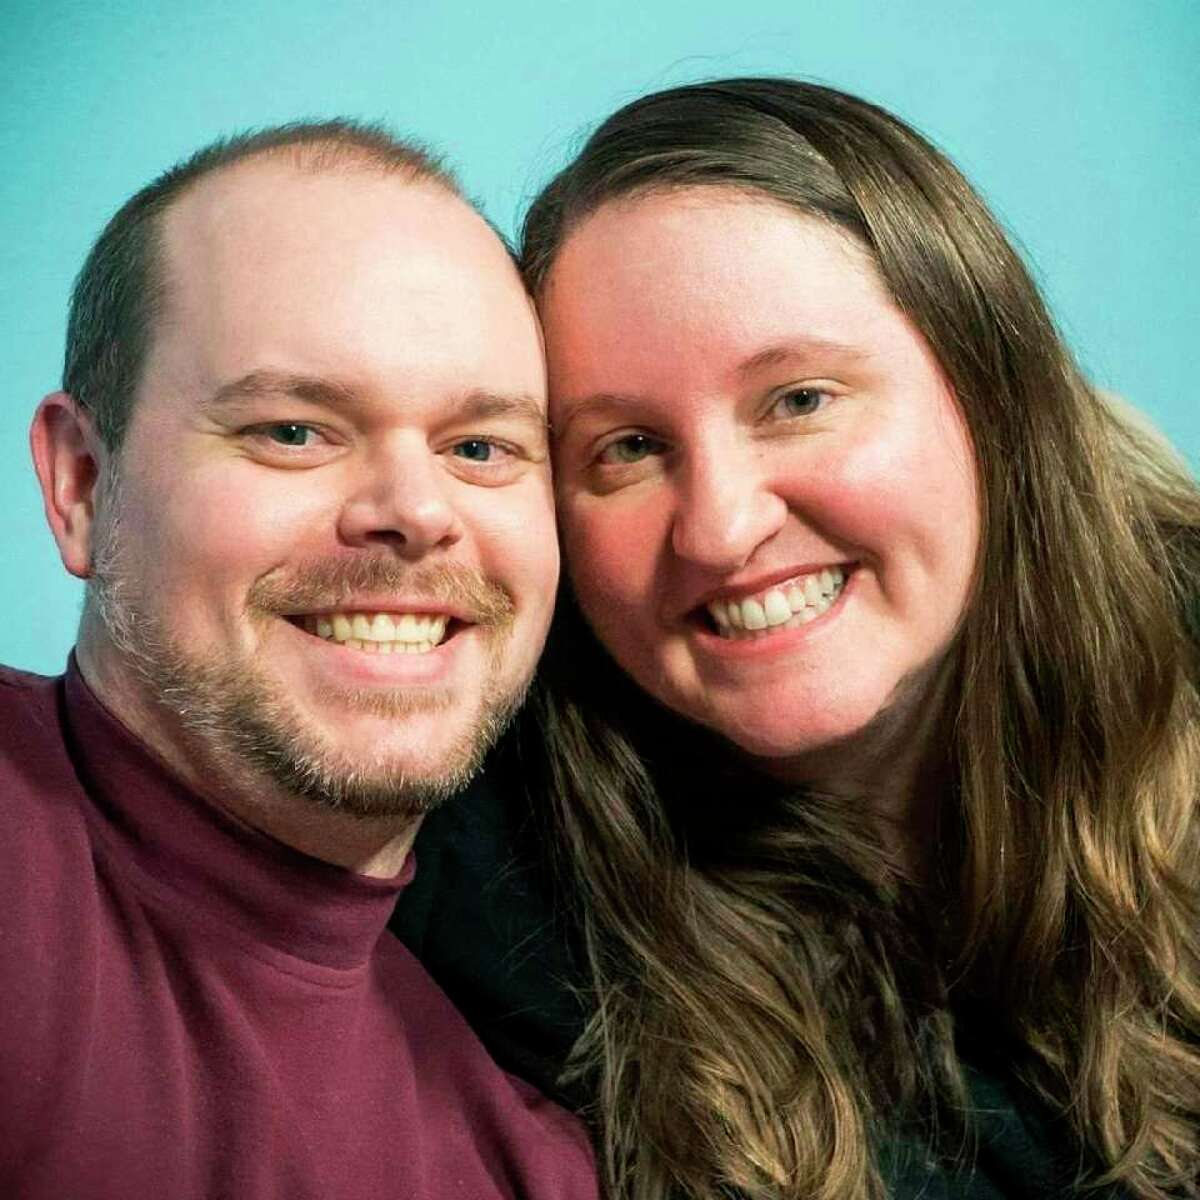 Pictured are Brian Papendick and Becky Johnston. (Photo provided)